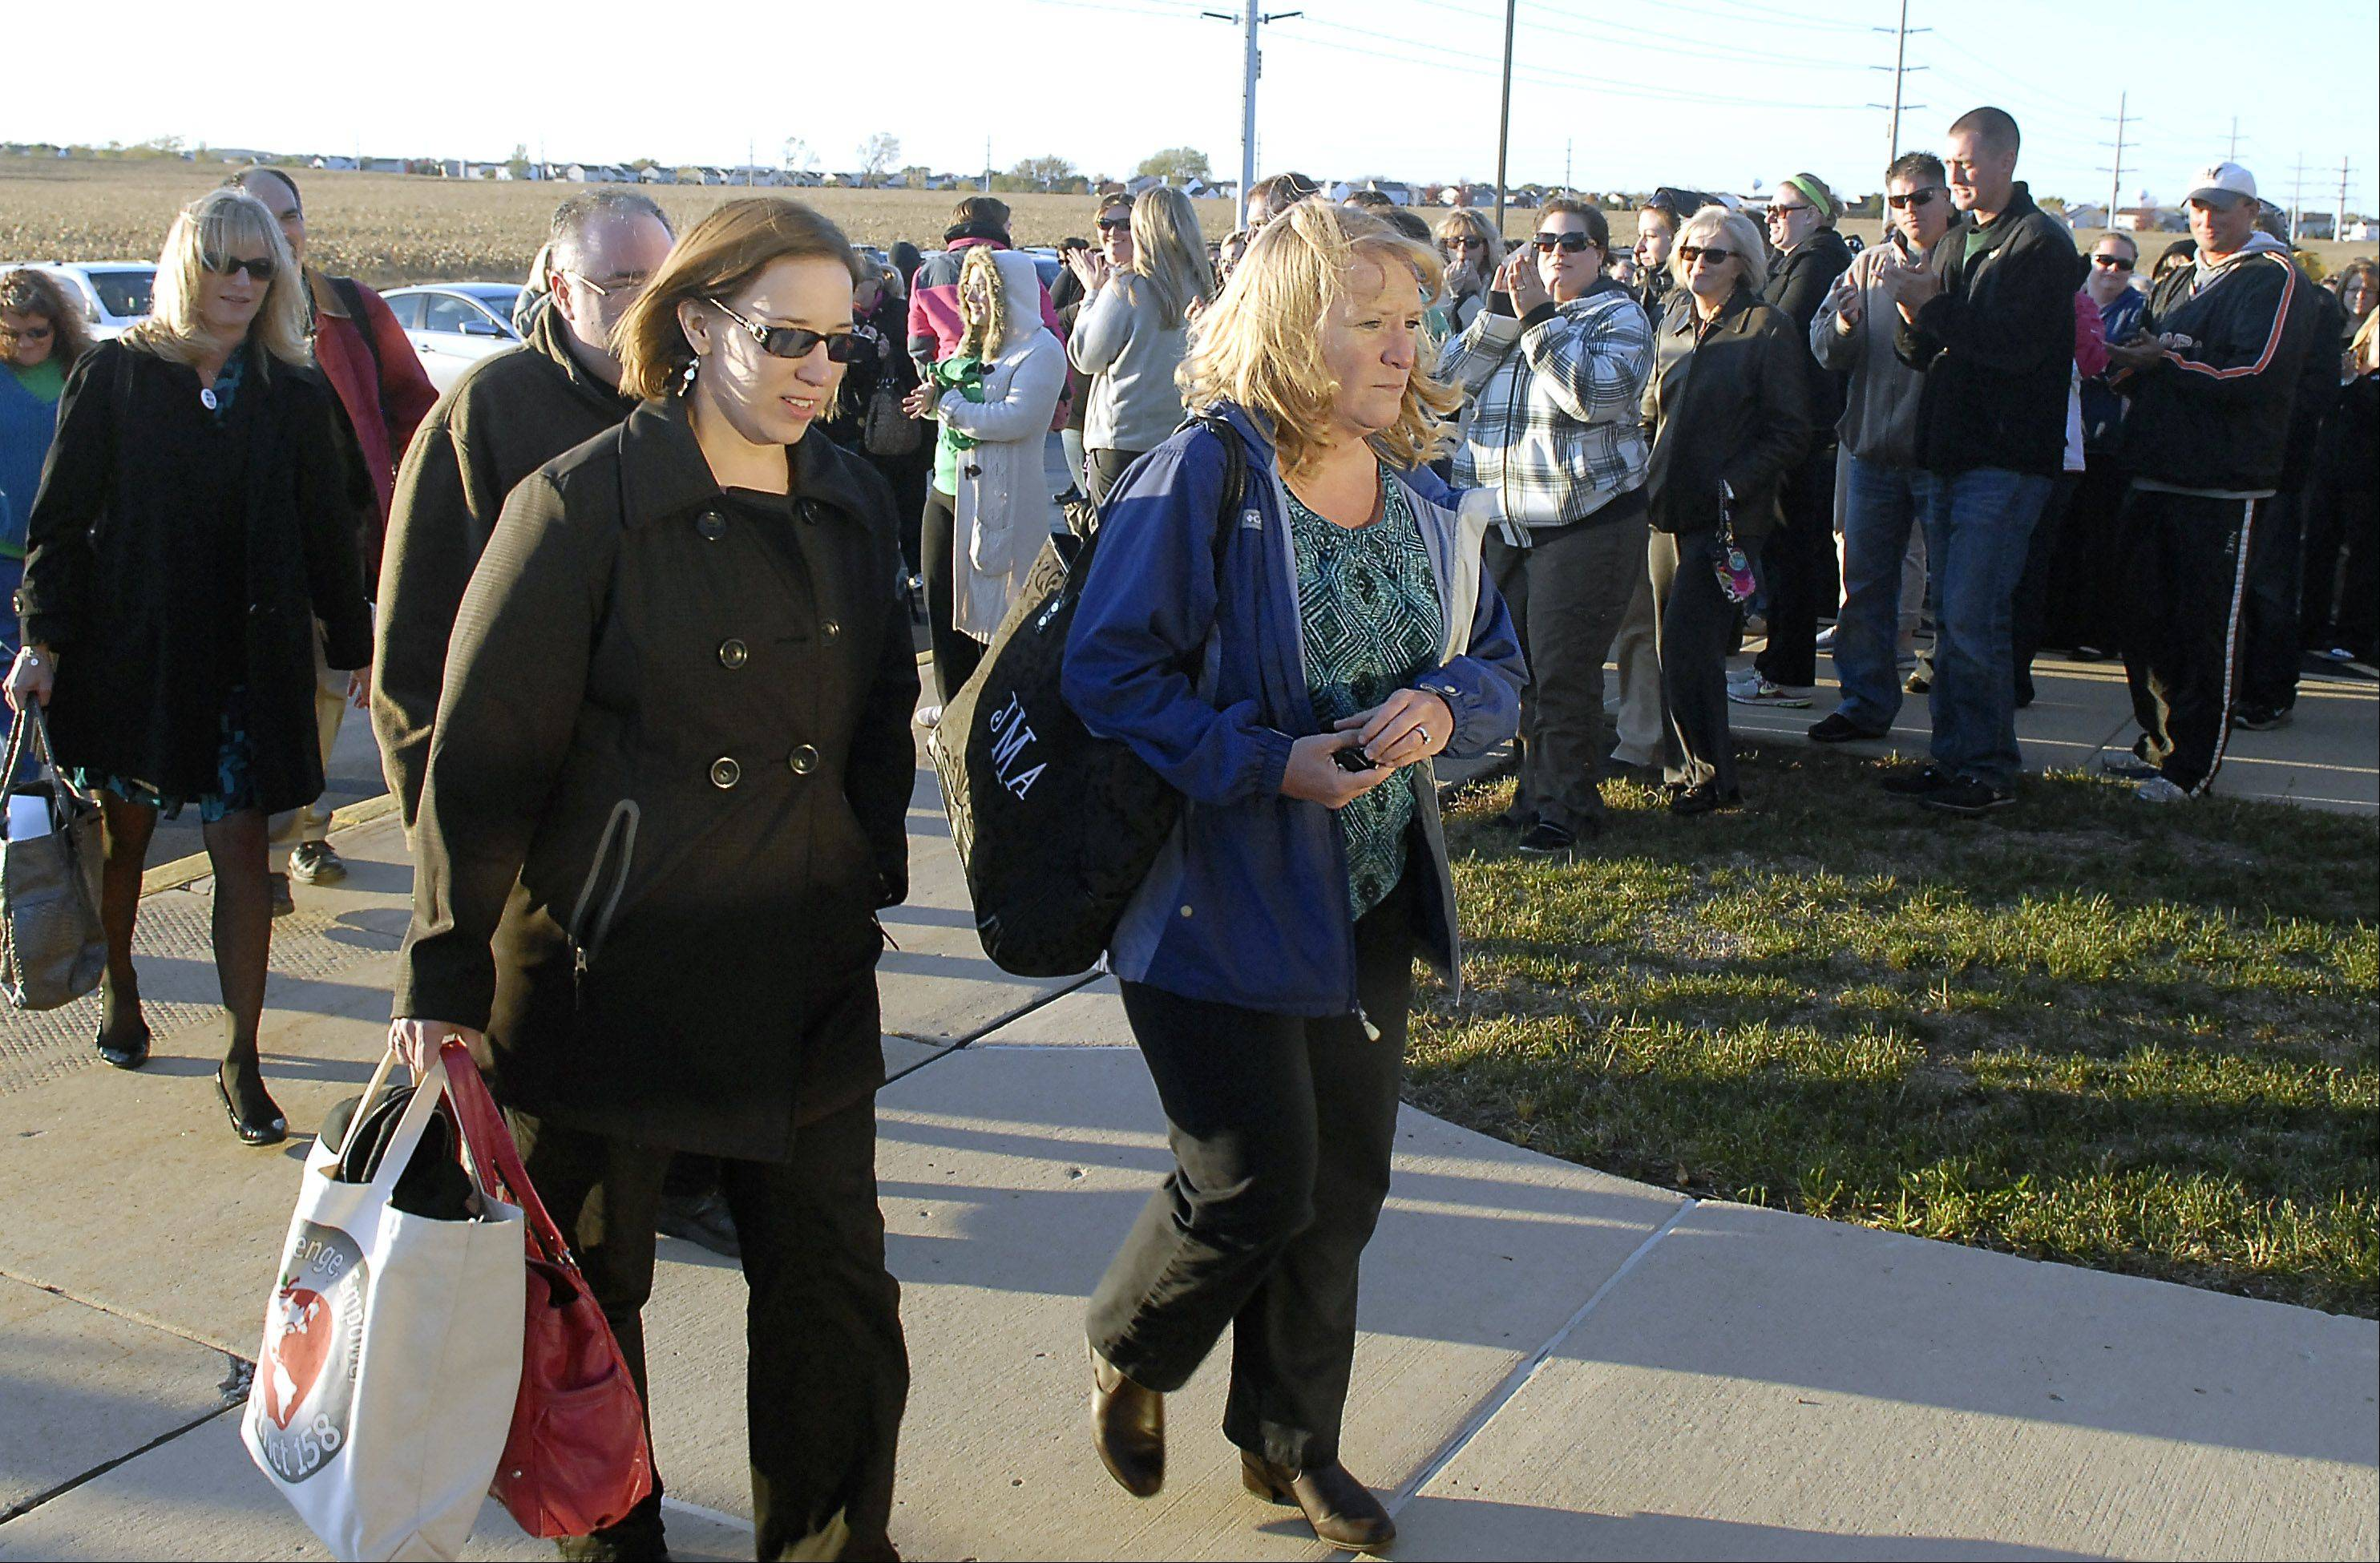 Huntley Education Association co-presidents Chris Laird, left, and Julie McLaughlin are applauded as they and other union representatives walk into Huntley Unit District 158 headquarters in Algonquin on Oct. 10 � the last time the two sides met before hammering out a tentative contract Tuesday night.